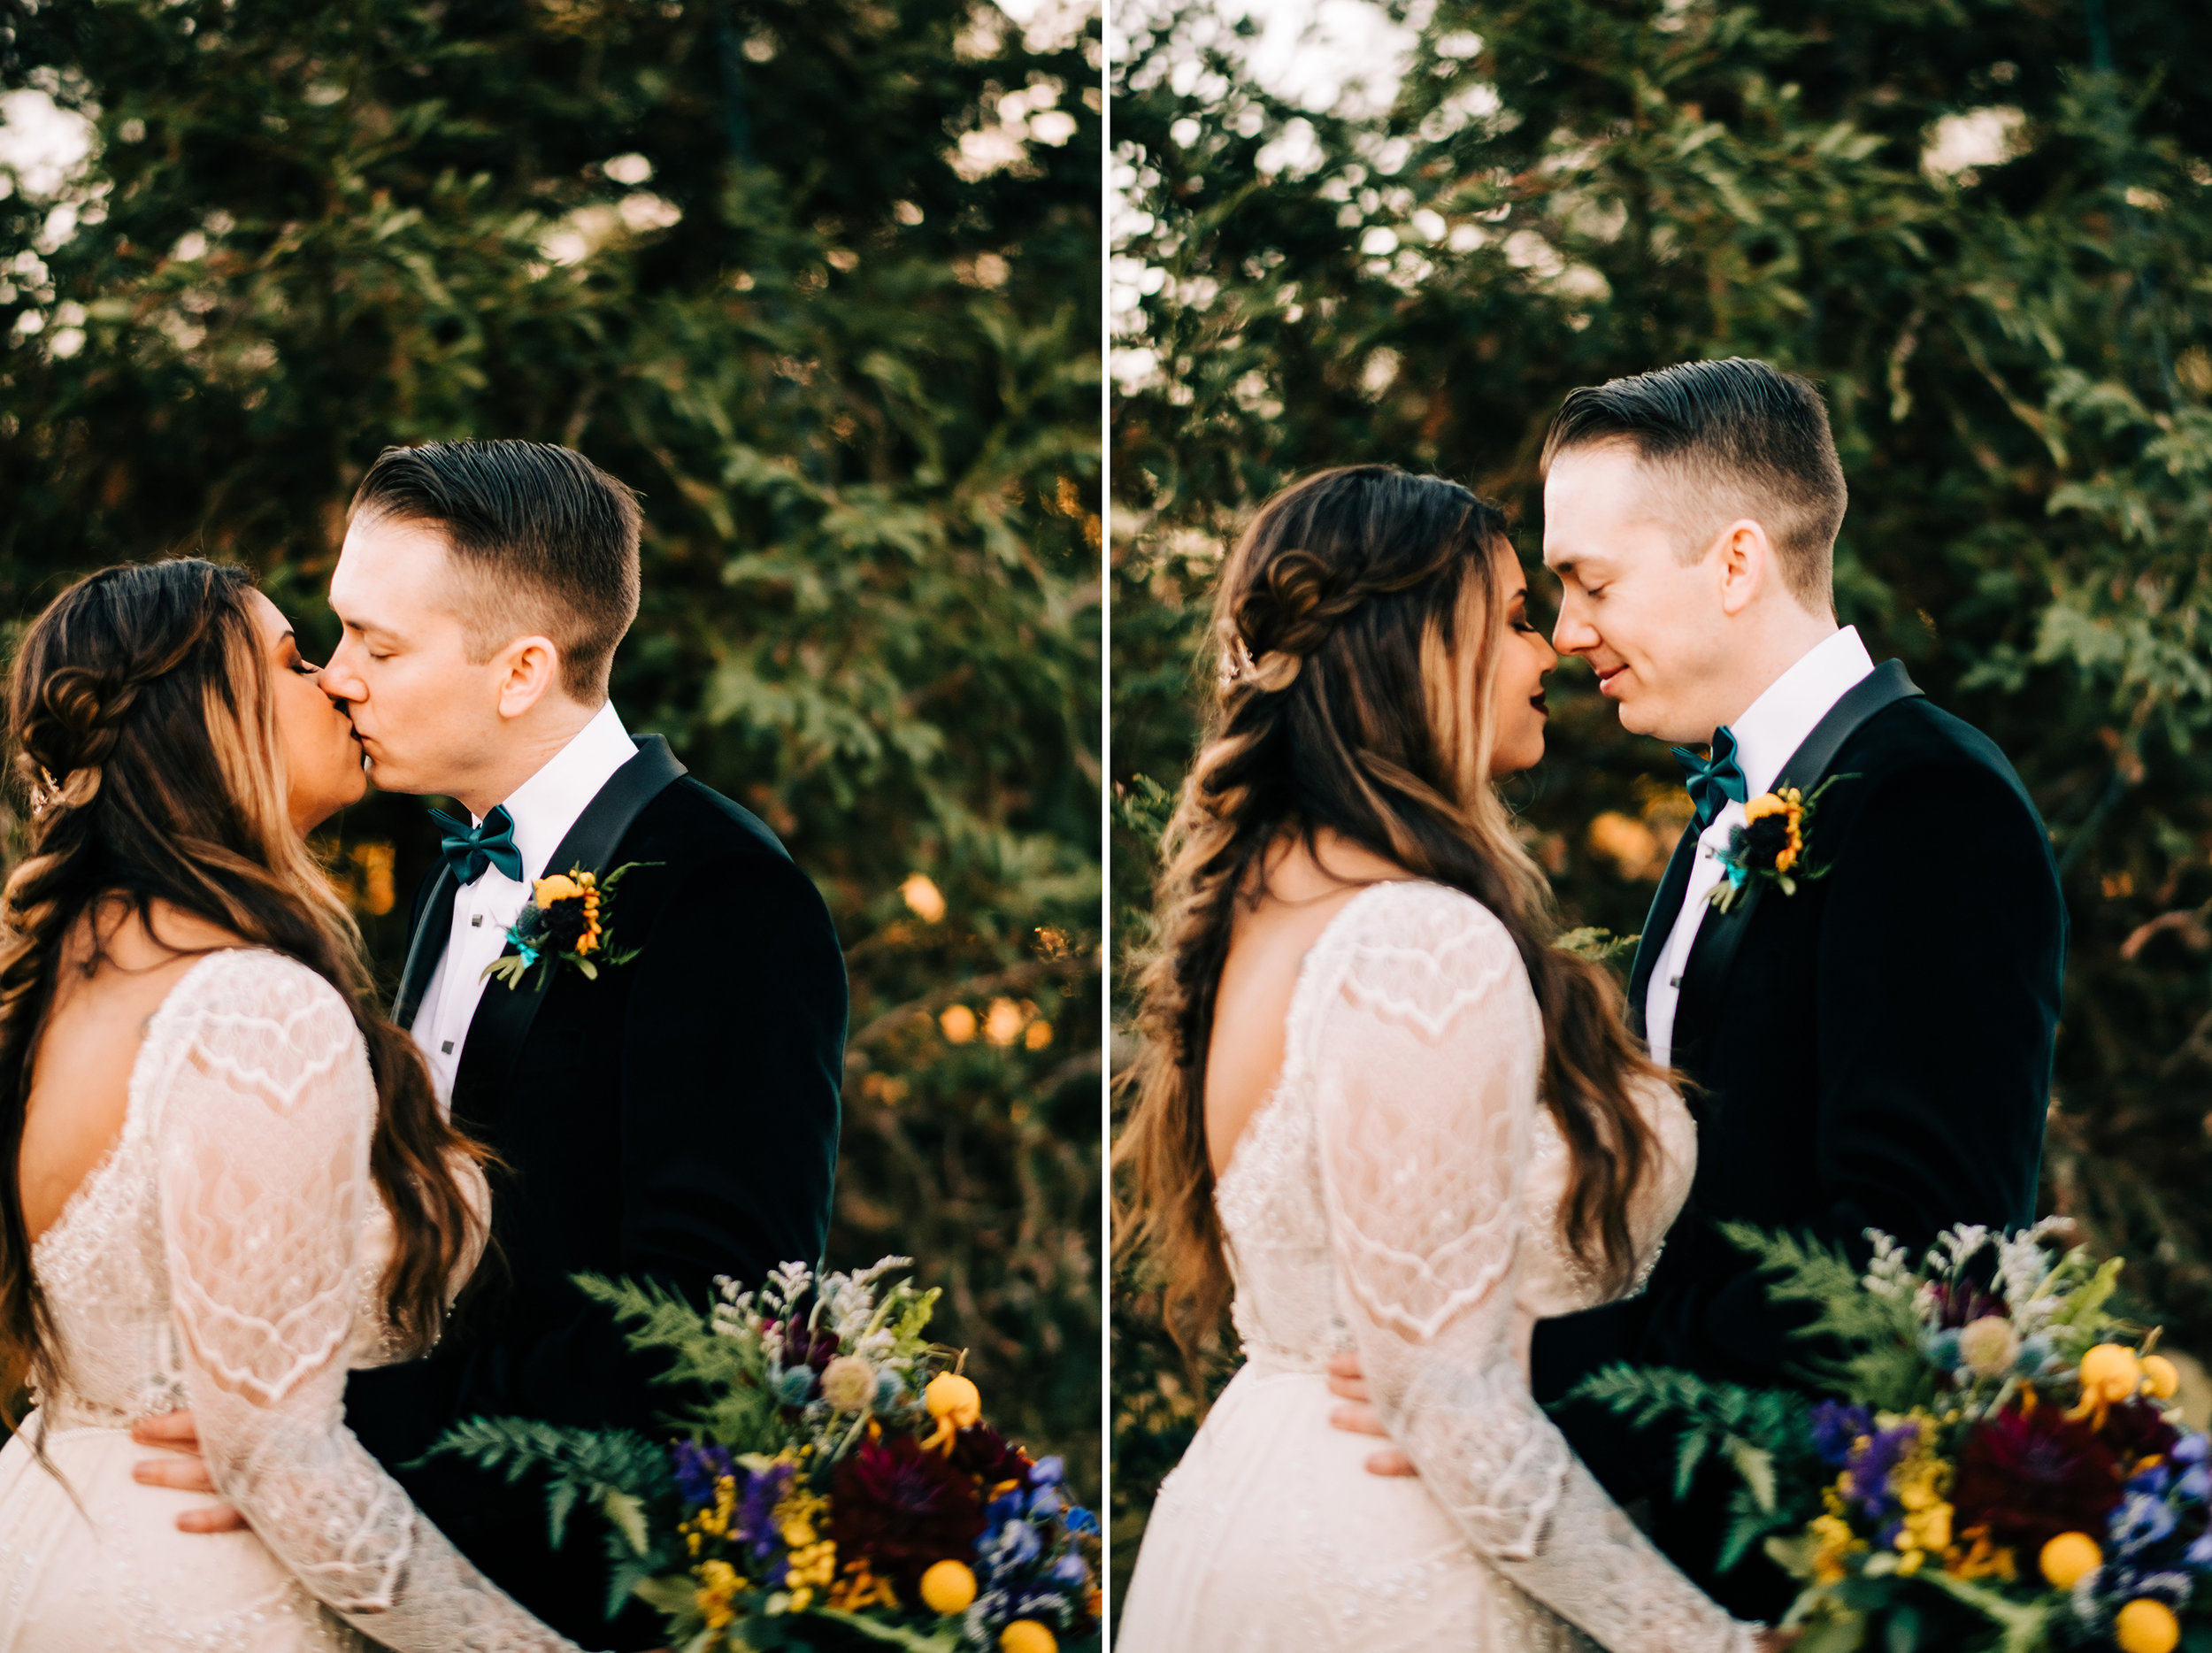 bay area nontraditional wedding photographer southern california boho wedding love light magic san francisco oakland northern california-859.jpg